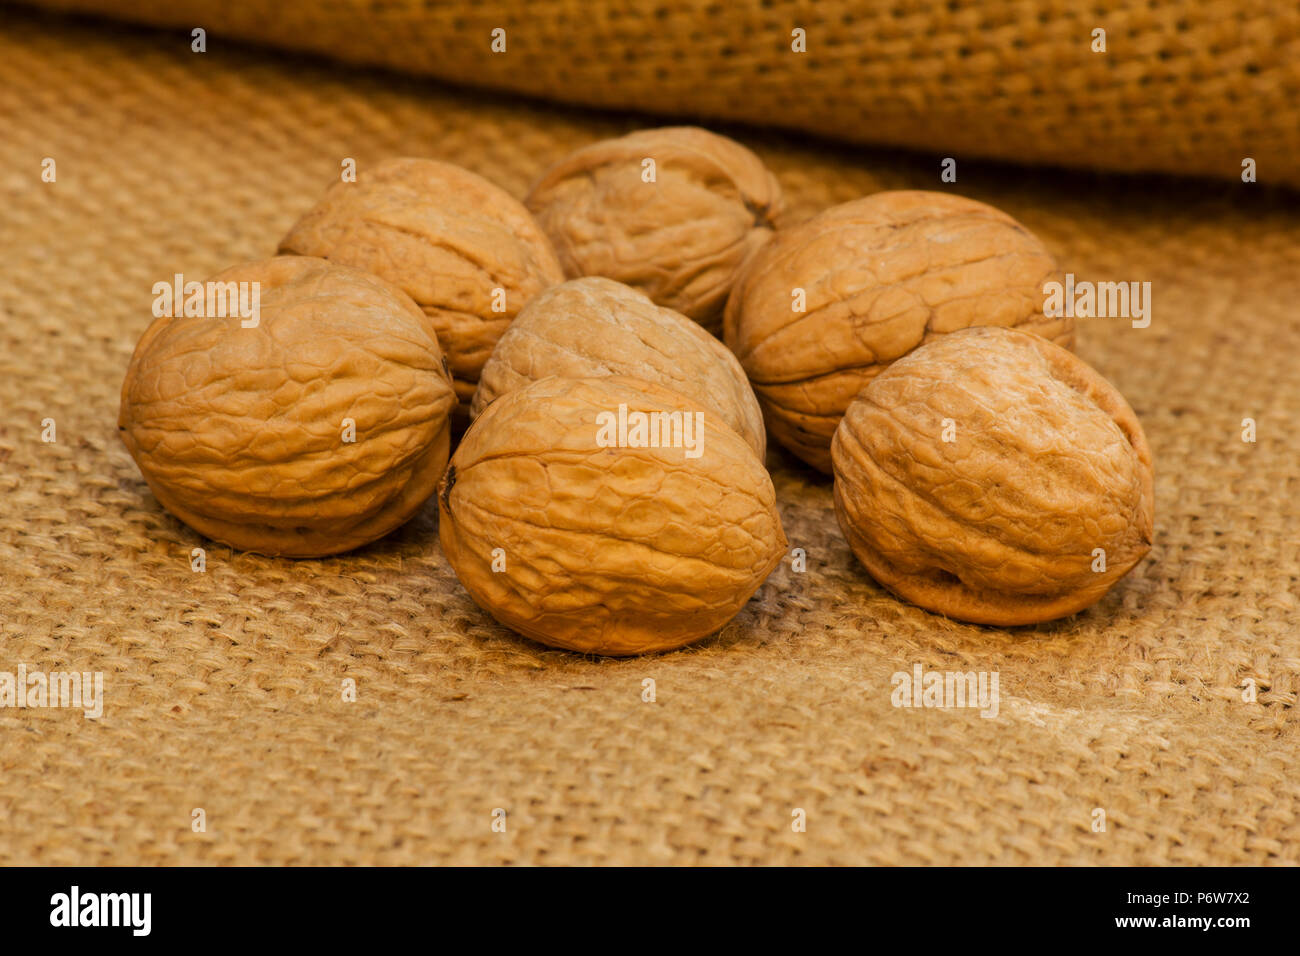 Walnuts on burlap - Stock Image